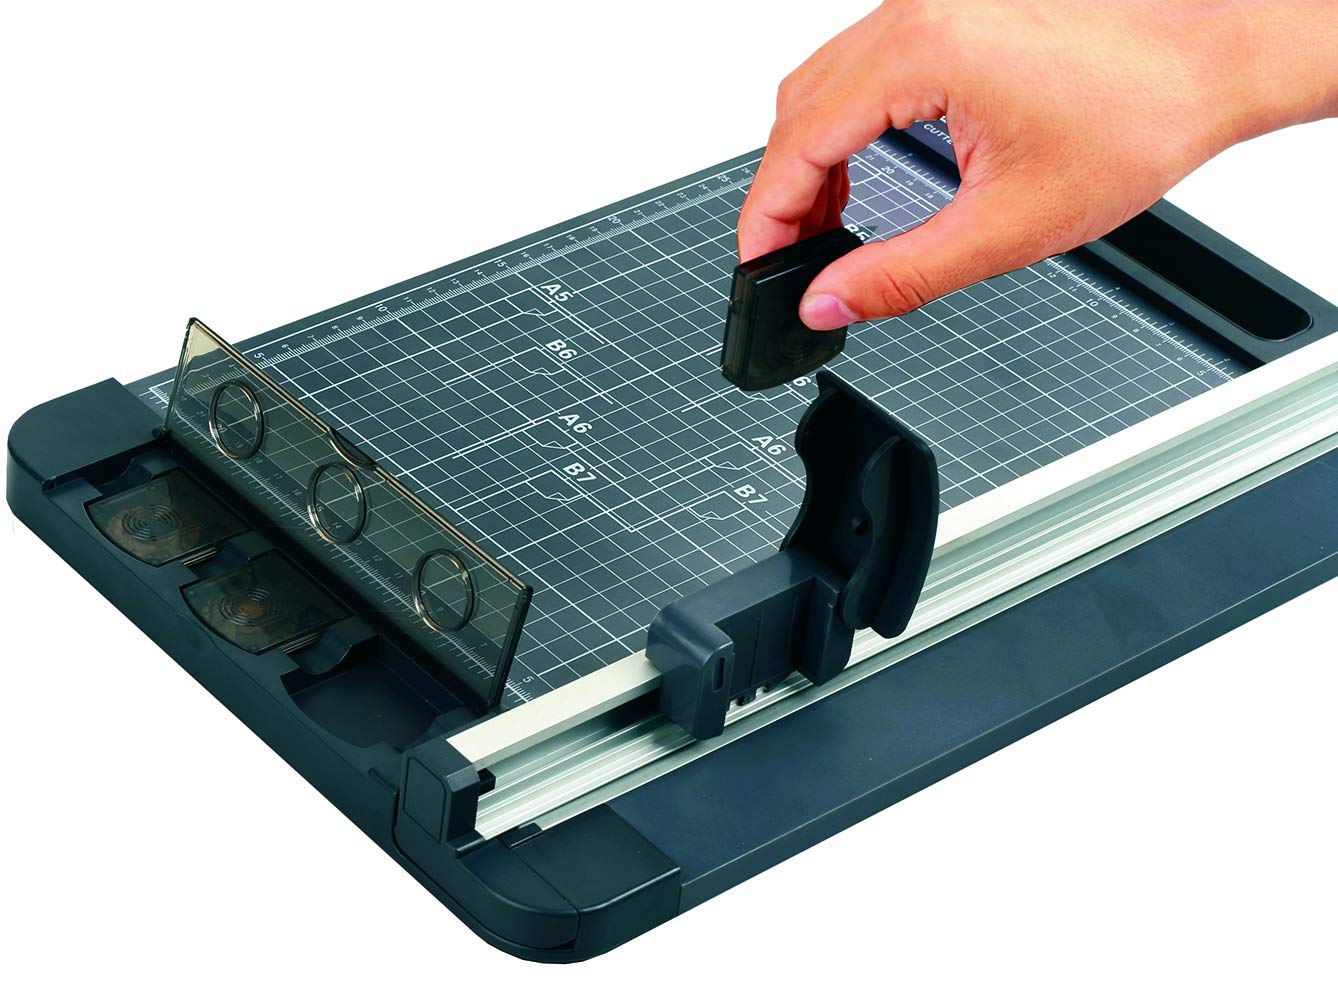 Jielisi 18 Inch Professional Rotary Paper Trimmer, A3 size 3-Ways Paper Cutter With Sliding Rotary Blade, 8 Sheet Capacity, Black